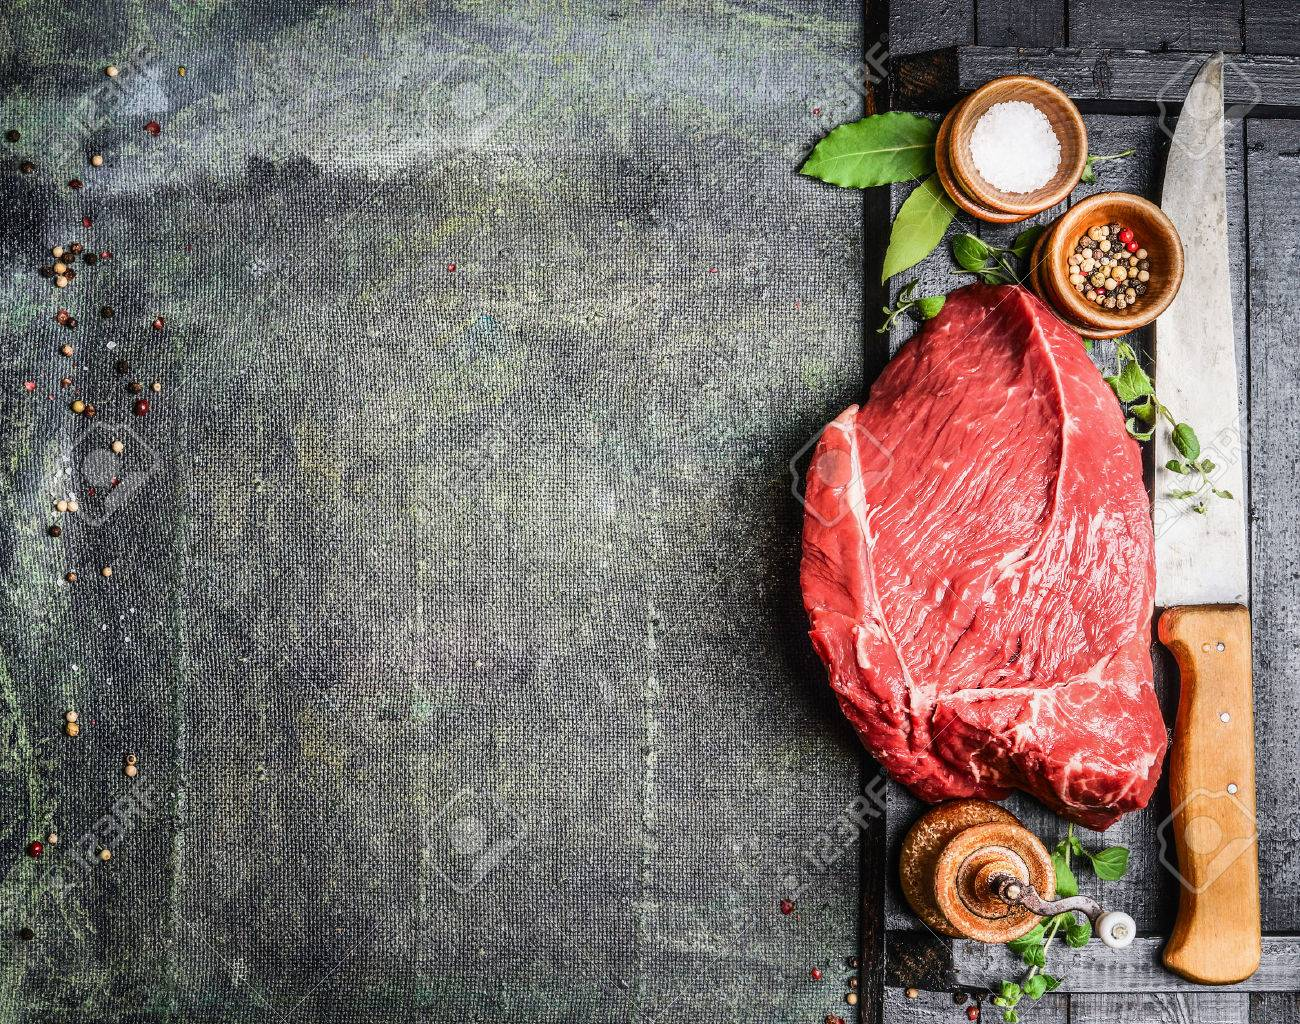 Fresh raw meat with herbs,spices and butcher knife on rustic background, top view, place for text. Cooking concept. Horizontal. - 50916097